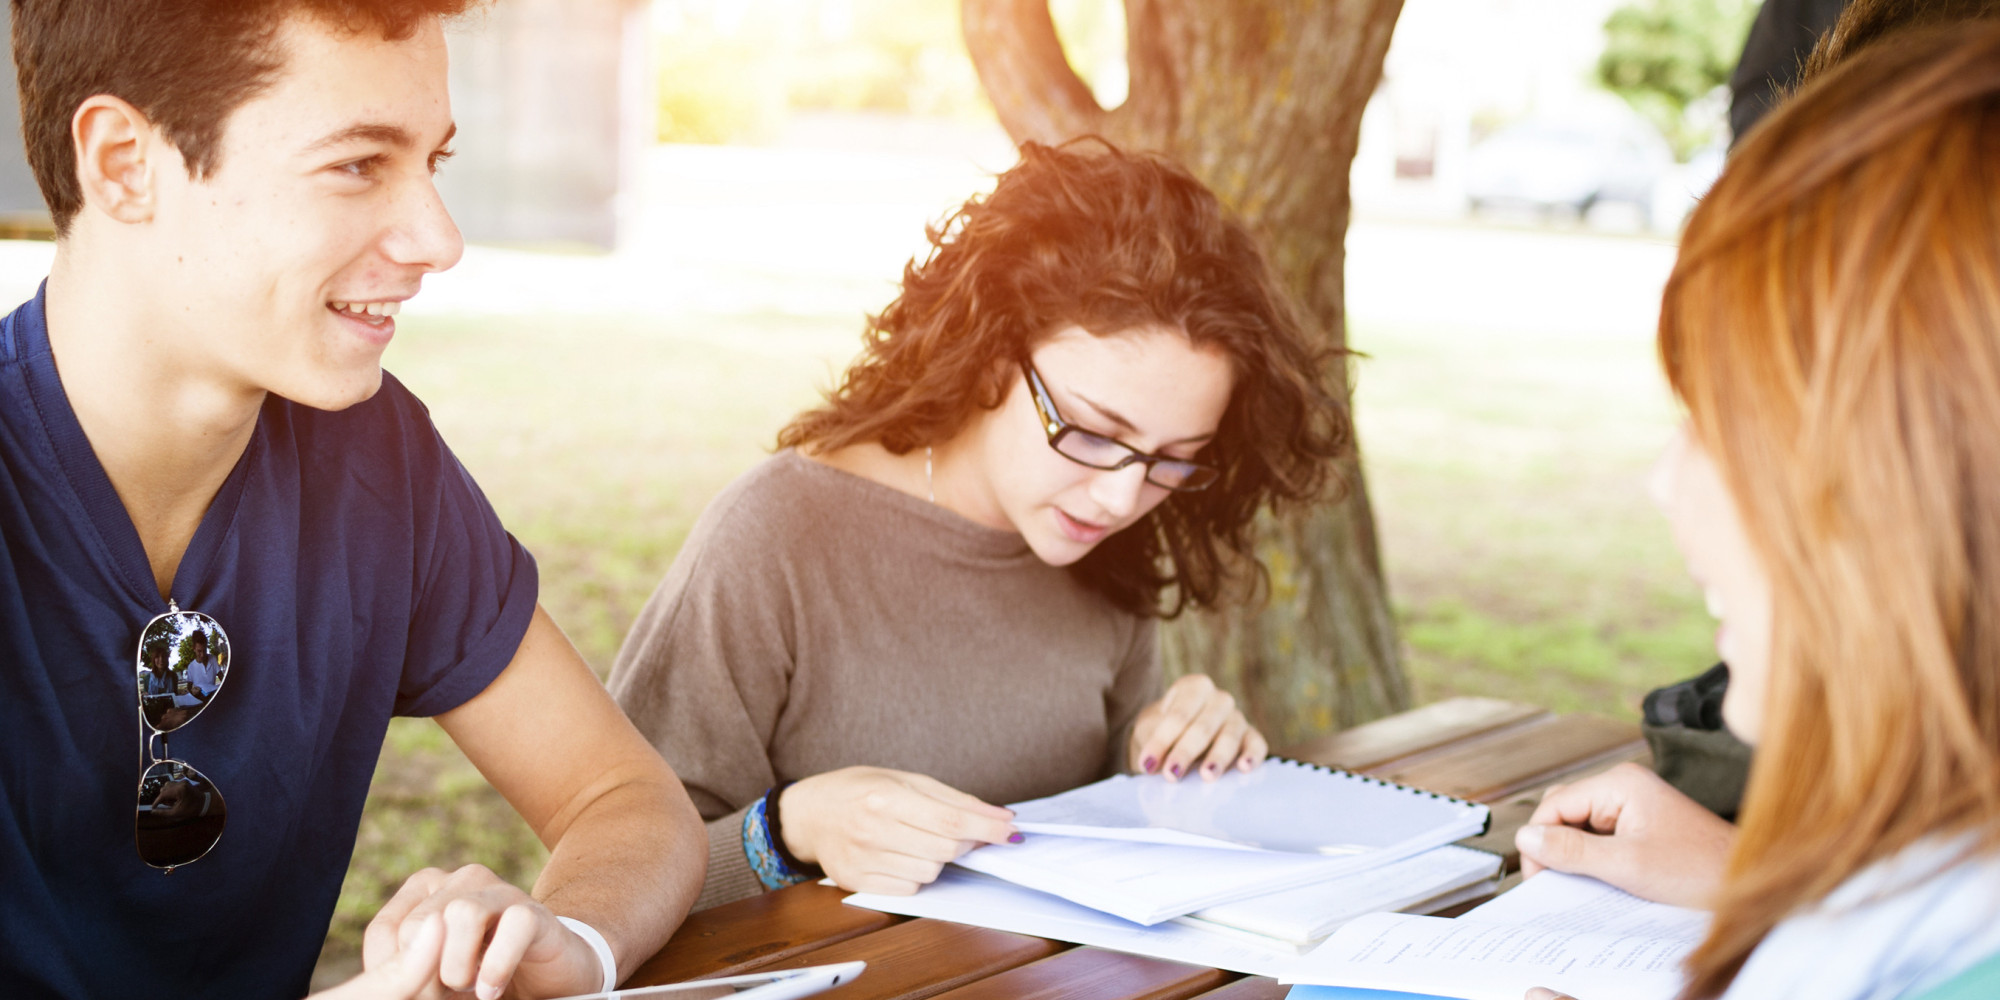 Low entry levels for education students linked to dropping education standards